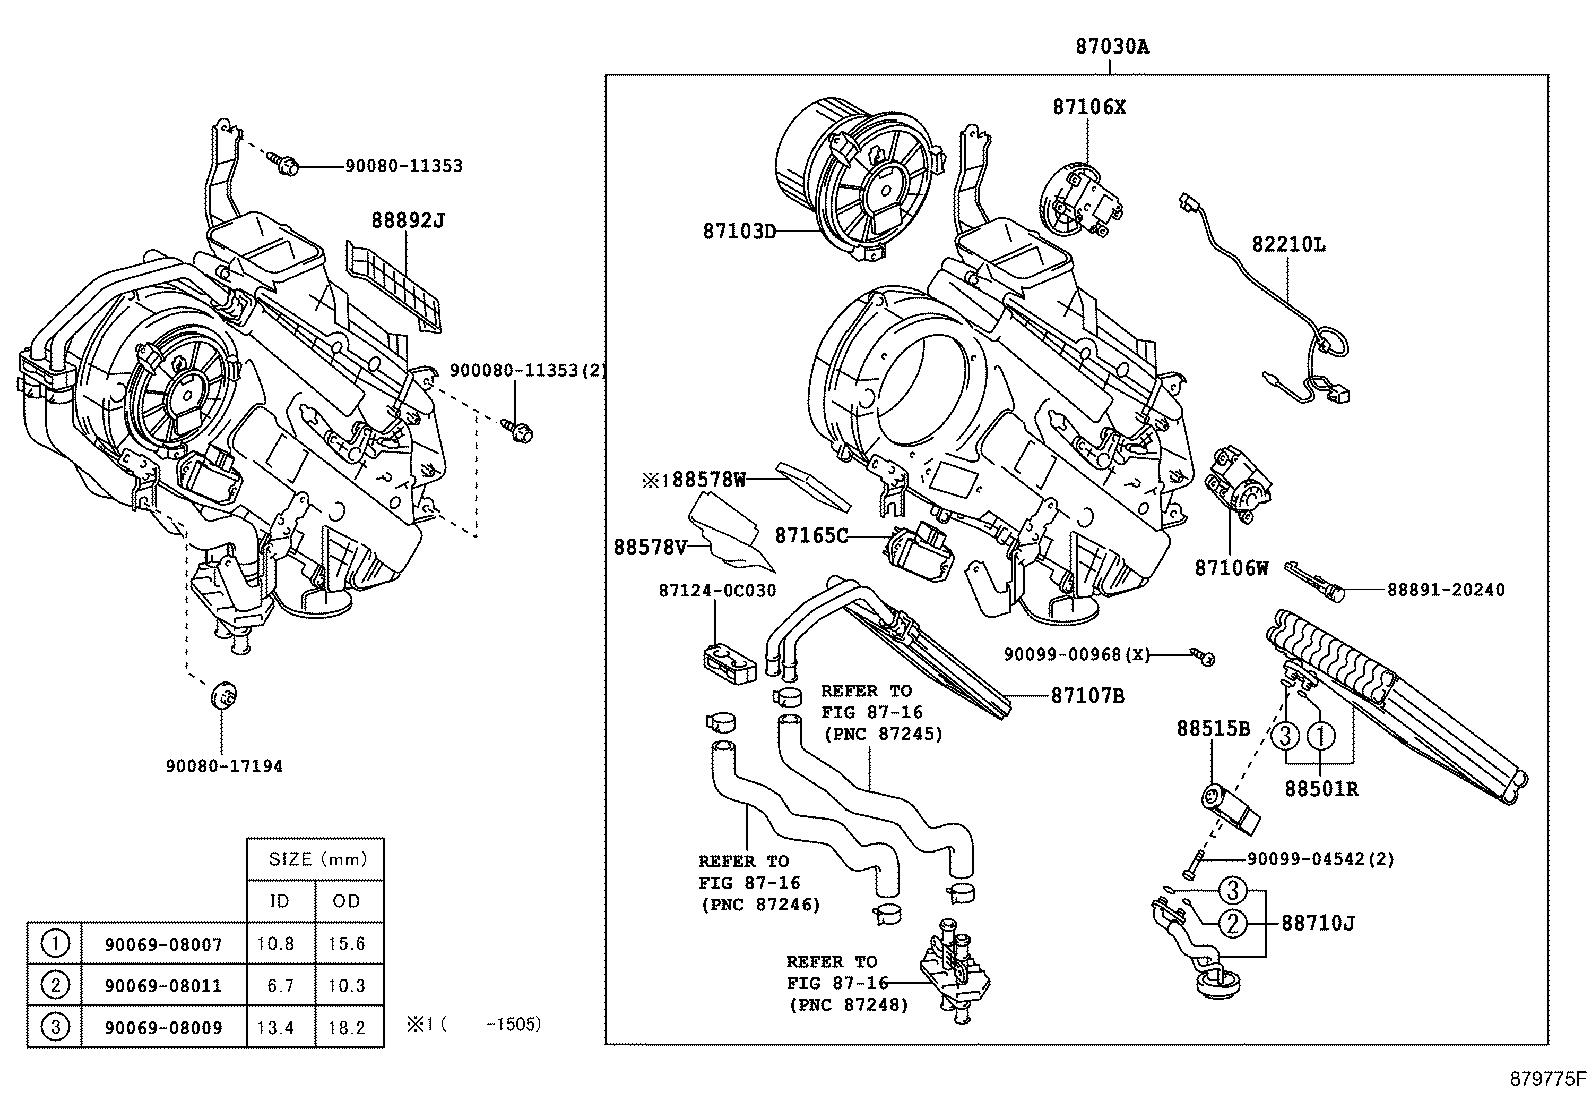 Toyota Sequoia Servo Sub Assembly Damper For Cooling